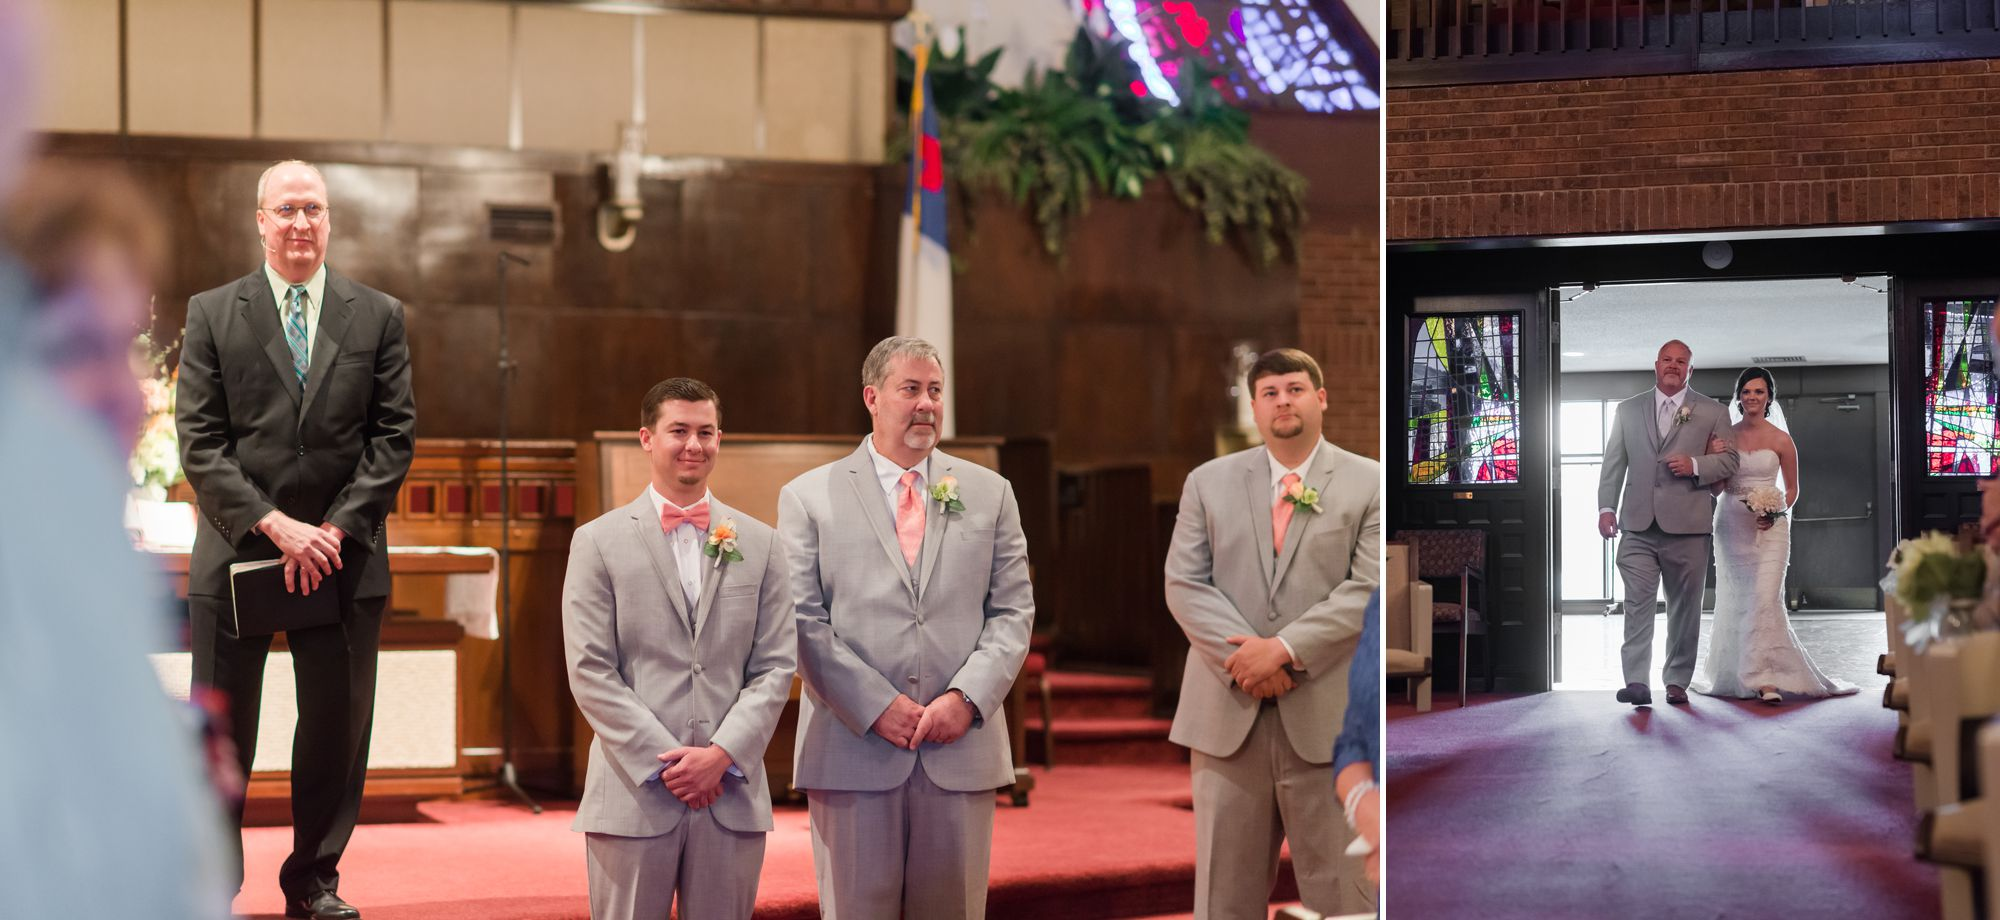 concord-nc-wedding-images 25